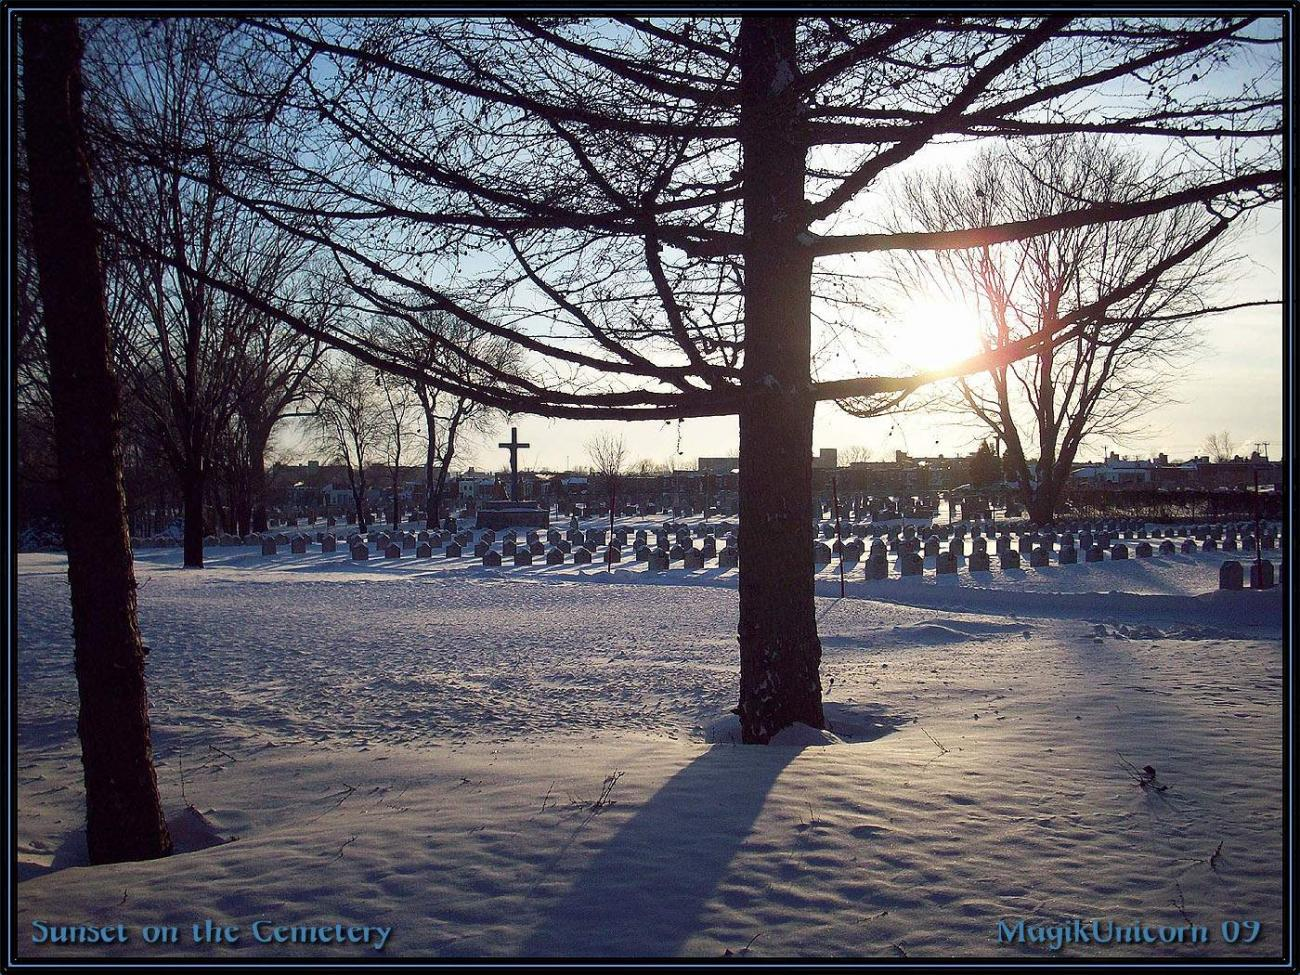 Sunset on the Cemetery